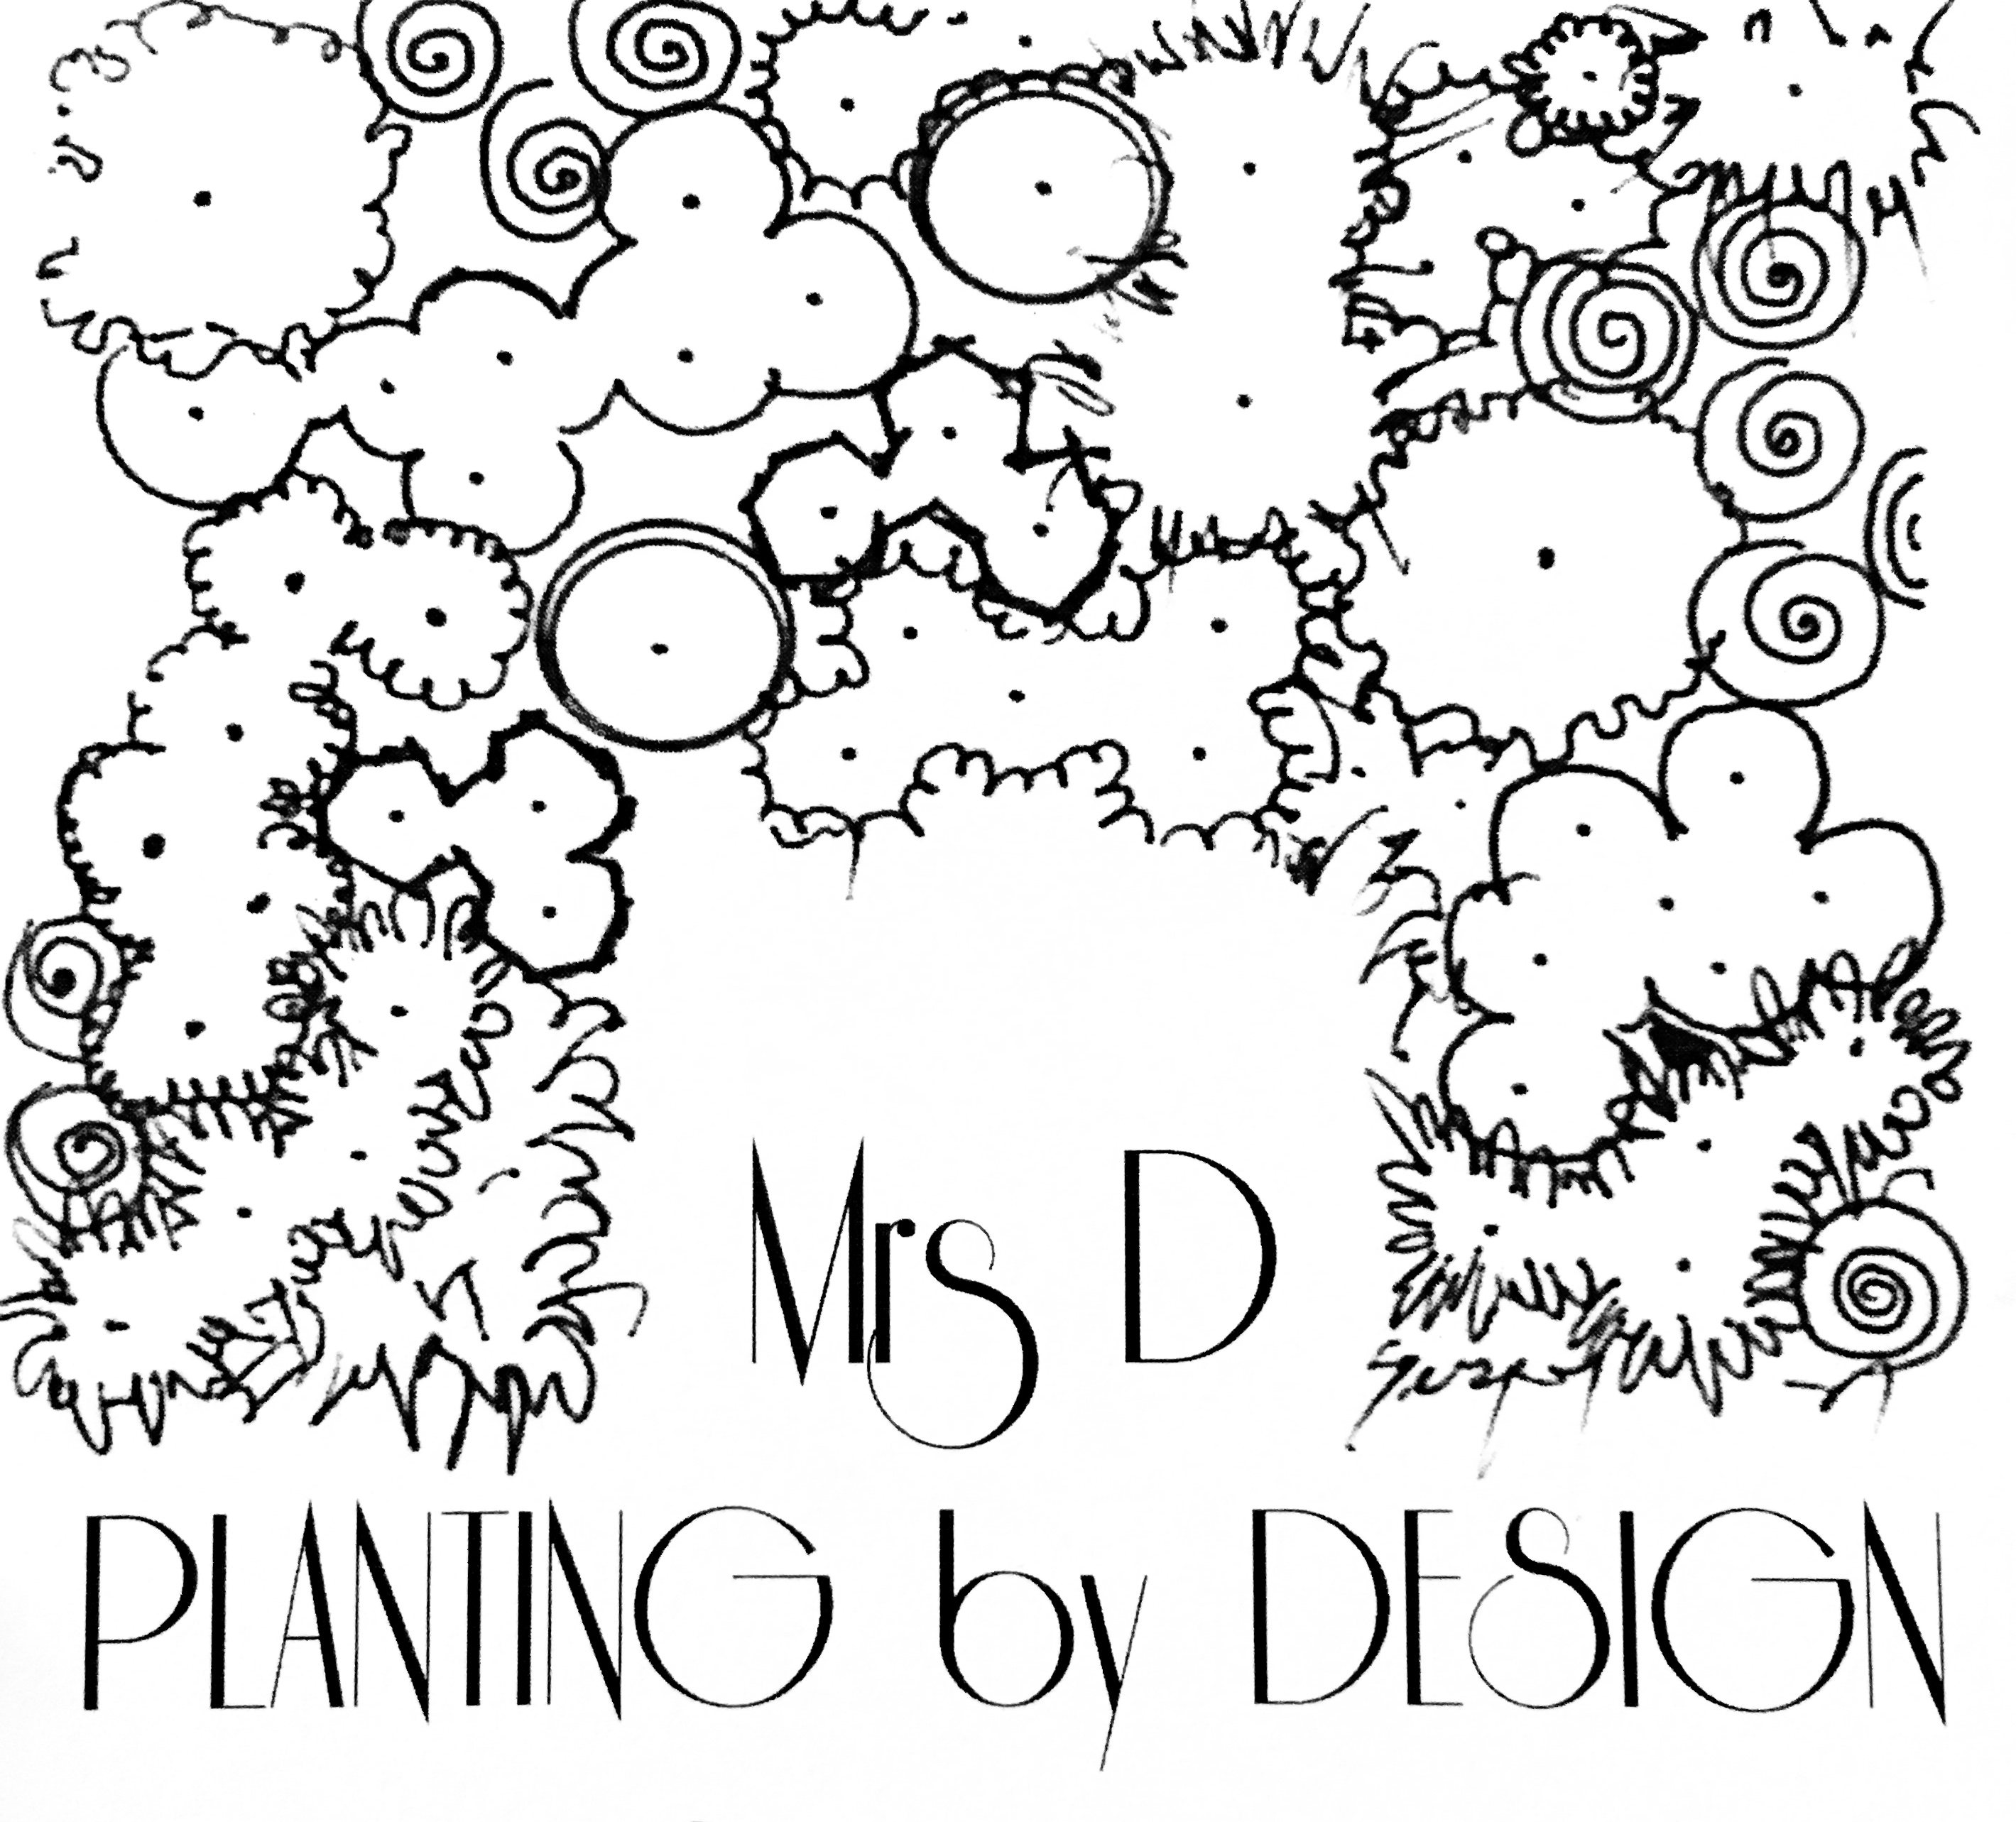 Mrs D Planting by Design